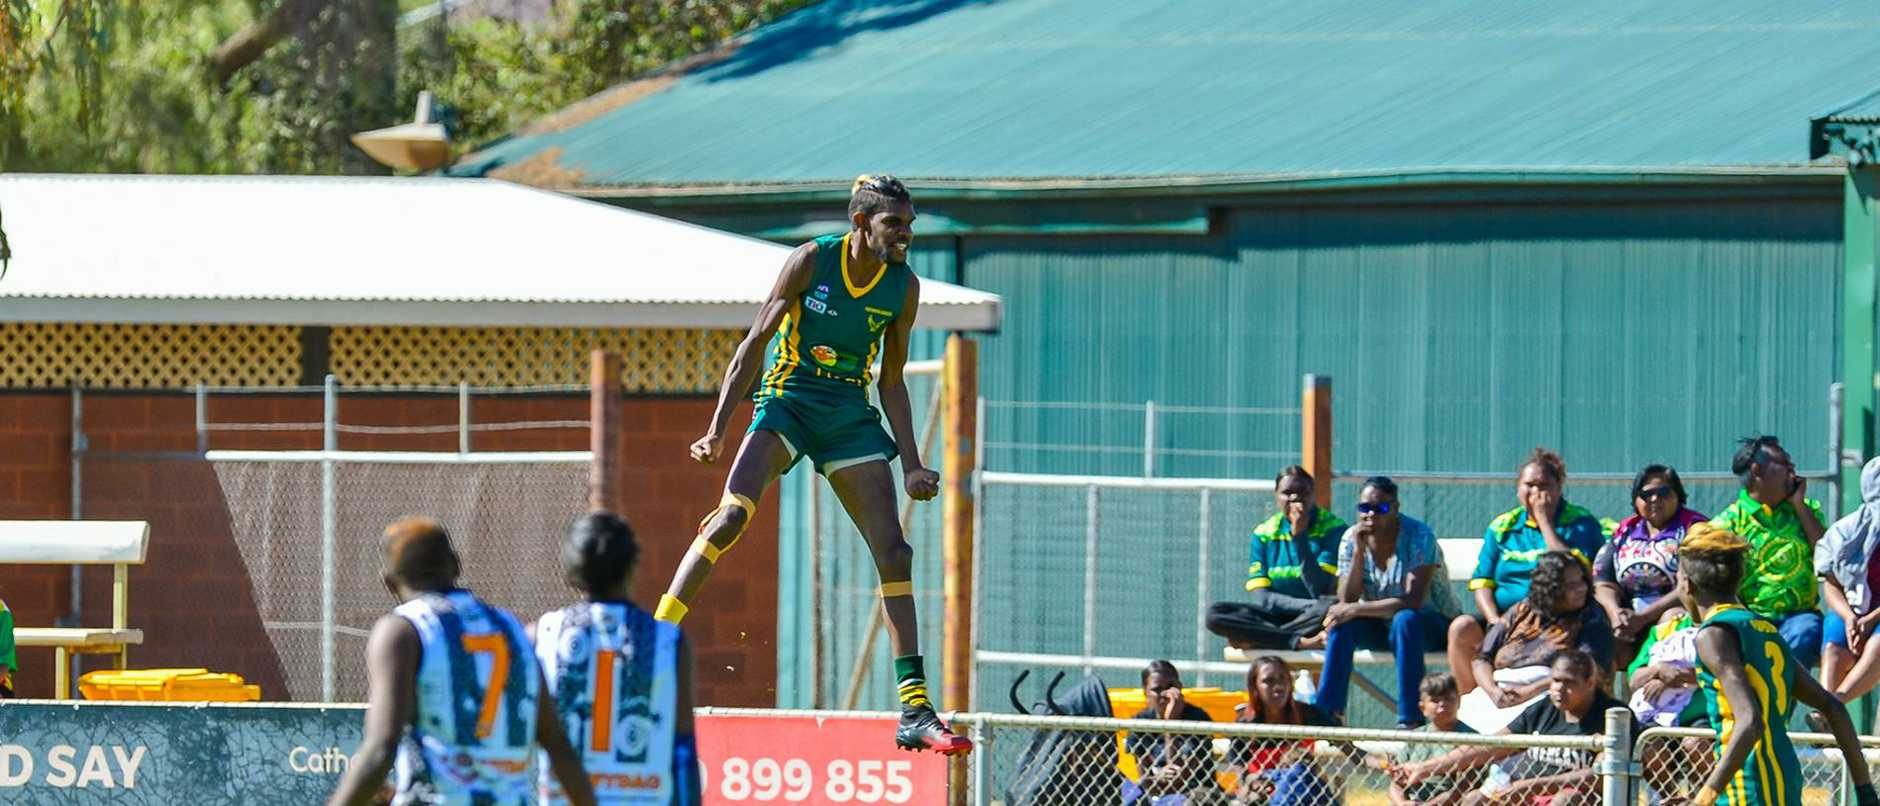 Shane Inkamala shows off insane hops (credit: AFL Northern Territory)